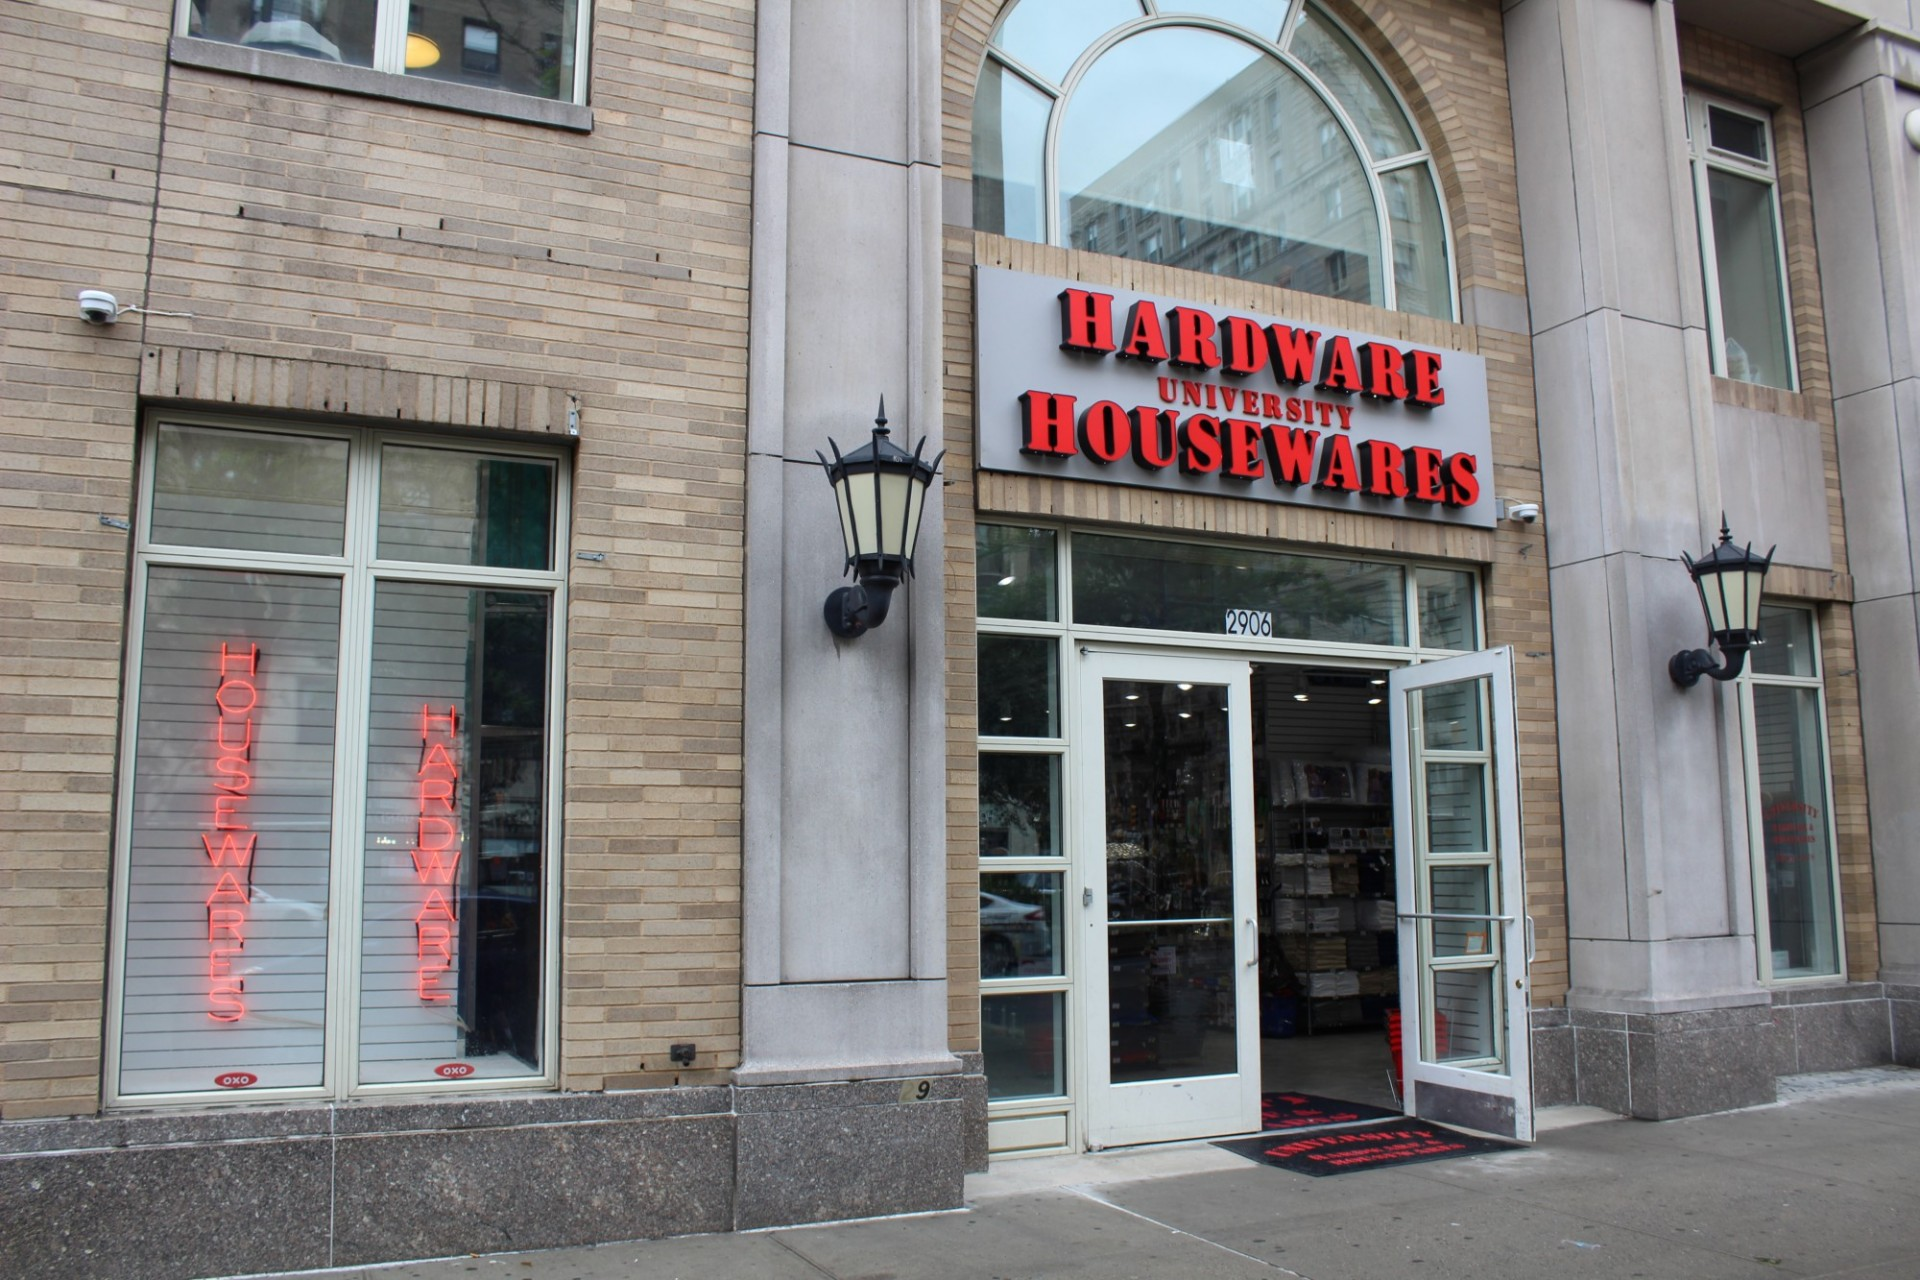 The new location of University Hardware and Housewares will be at 2906 Broadway, between 113th and 114th streets.